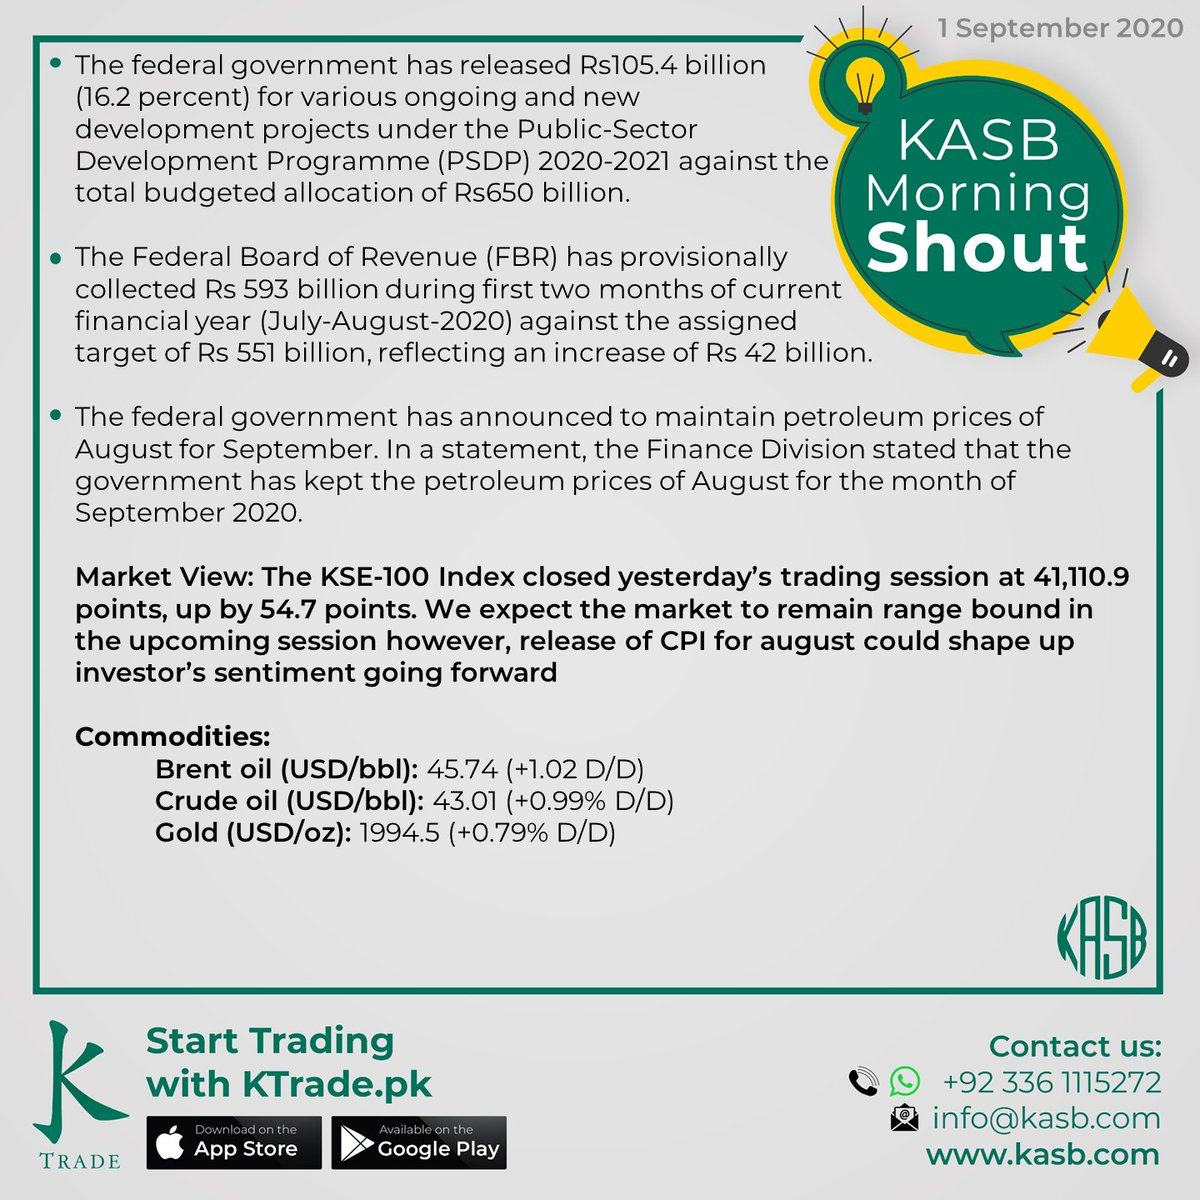 KASB Morning Shout: Our views on today's news #kasb #smartinvesting #psx #stockmarket #KTrade #onlinetrading #pakistaneconomy #imrankhan #sbp #inflation #kse100 #brokeragehouse #psxstocks #marketupdate #emergingmarkets #frontiermarkets #news #morning #today #views https://t.co/l0eSSkRYQn